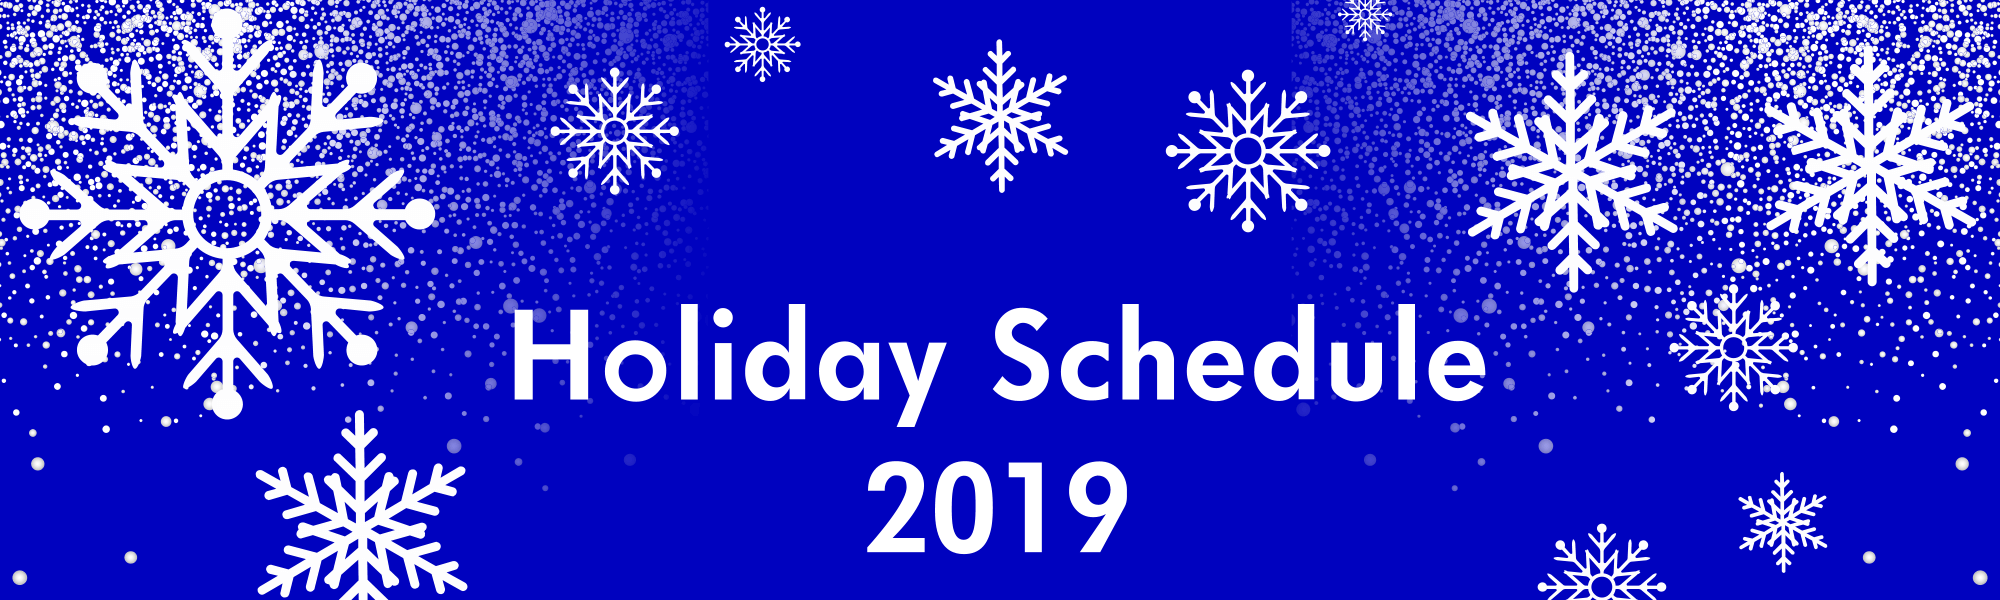 November & December 2019 Holiday Schedule